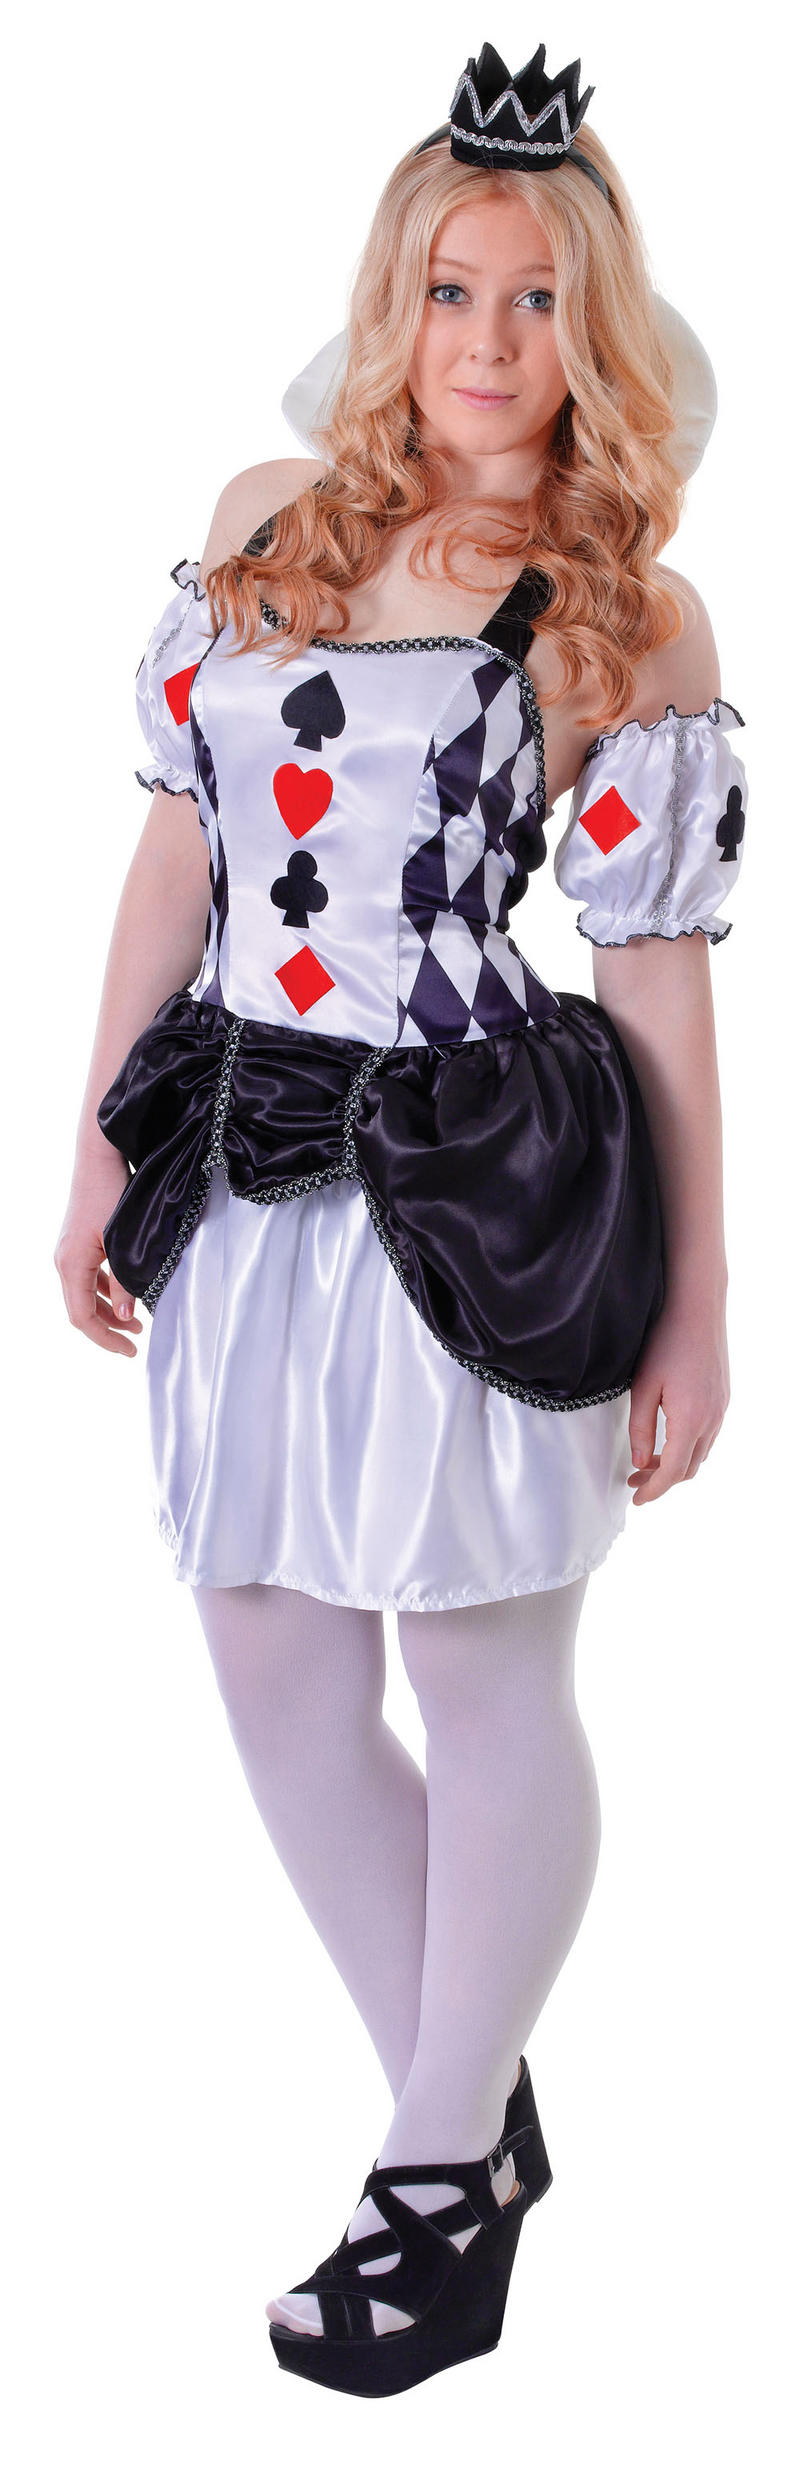 Queen Of Hearts Girls Teen Ladies UK 8 Fancy Dress Costume Outfit Alice